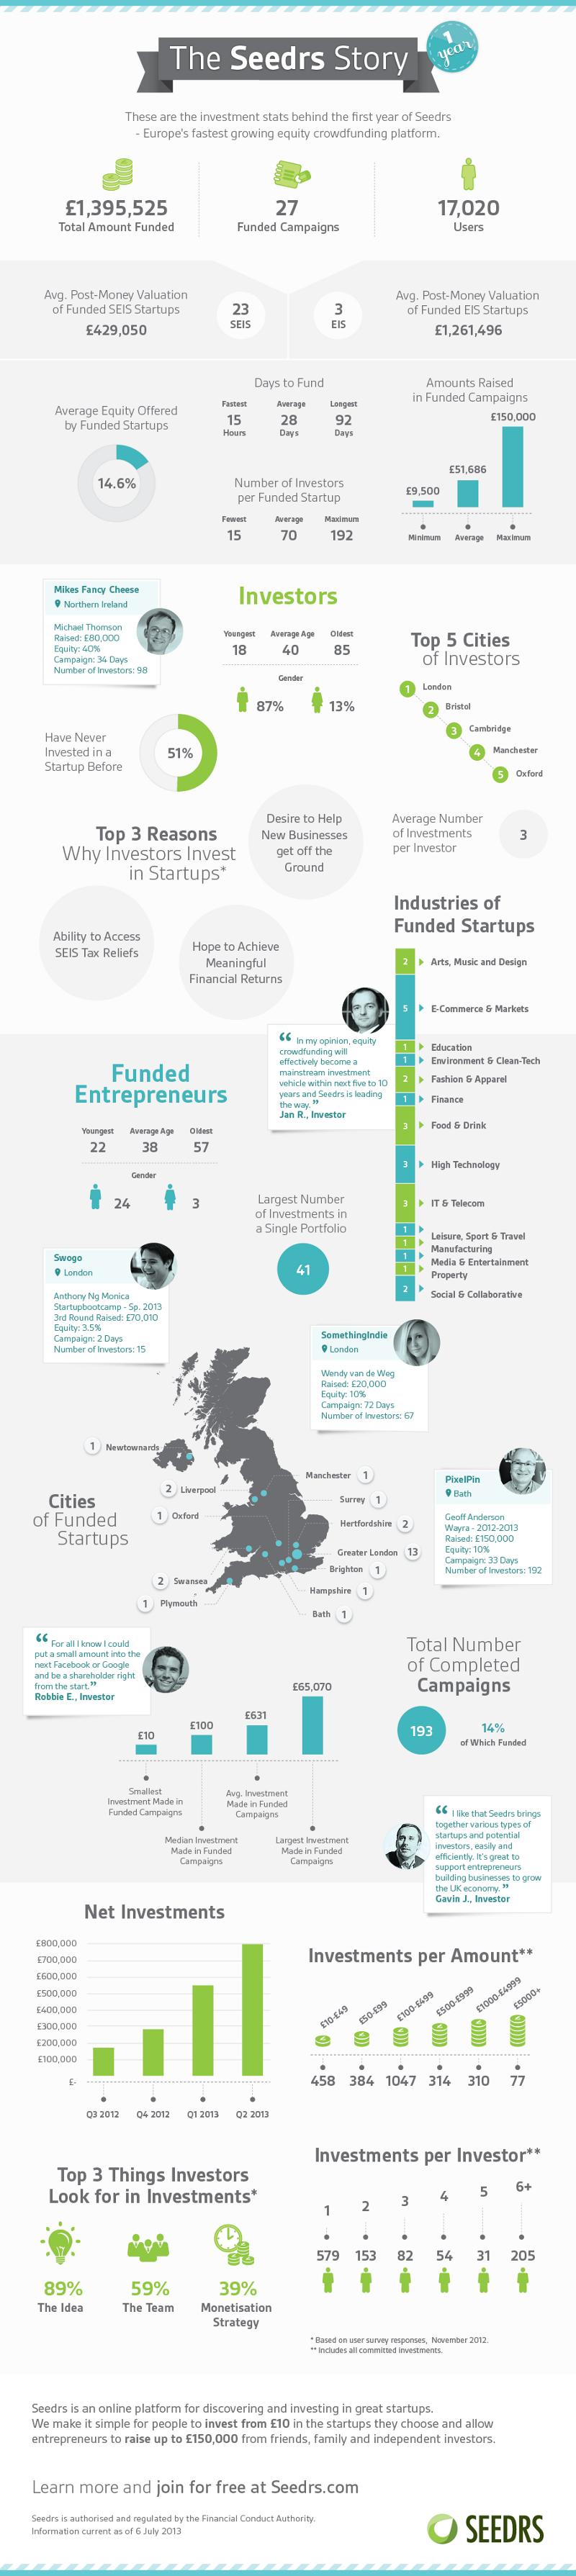 The Seedrs Story